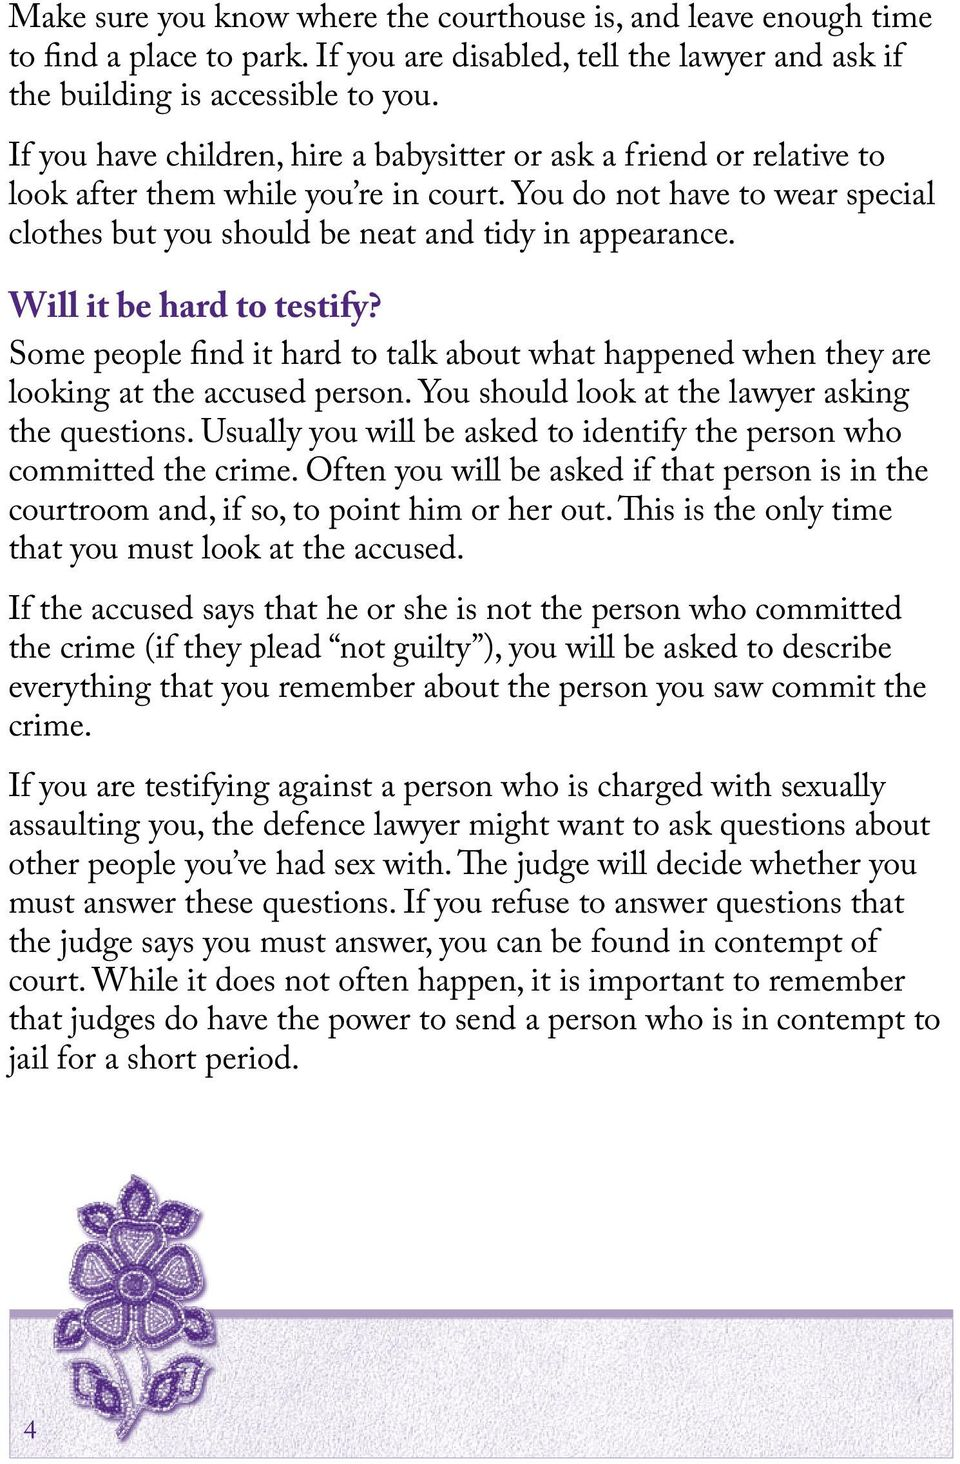 Will it be hard to testify? Some people find it hard to talk about what happened when they are looking at the accused person. You should look at the lawyer asking the questions.